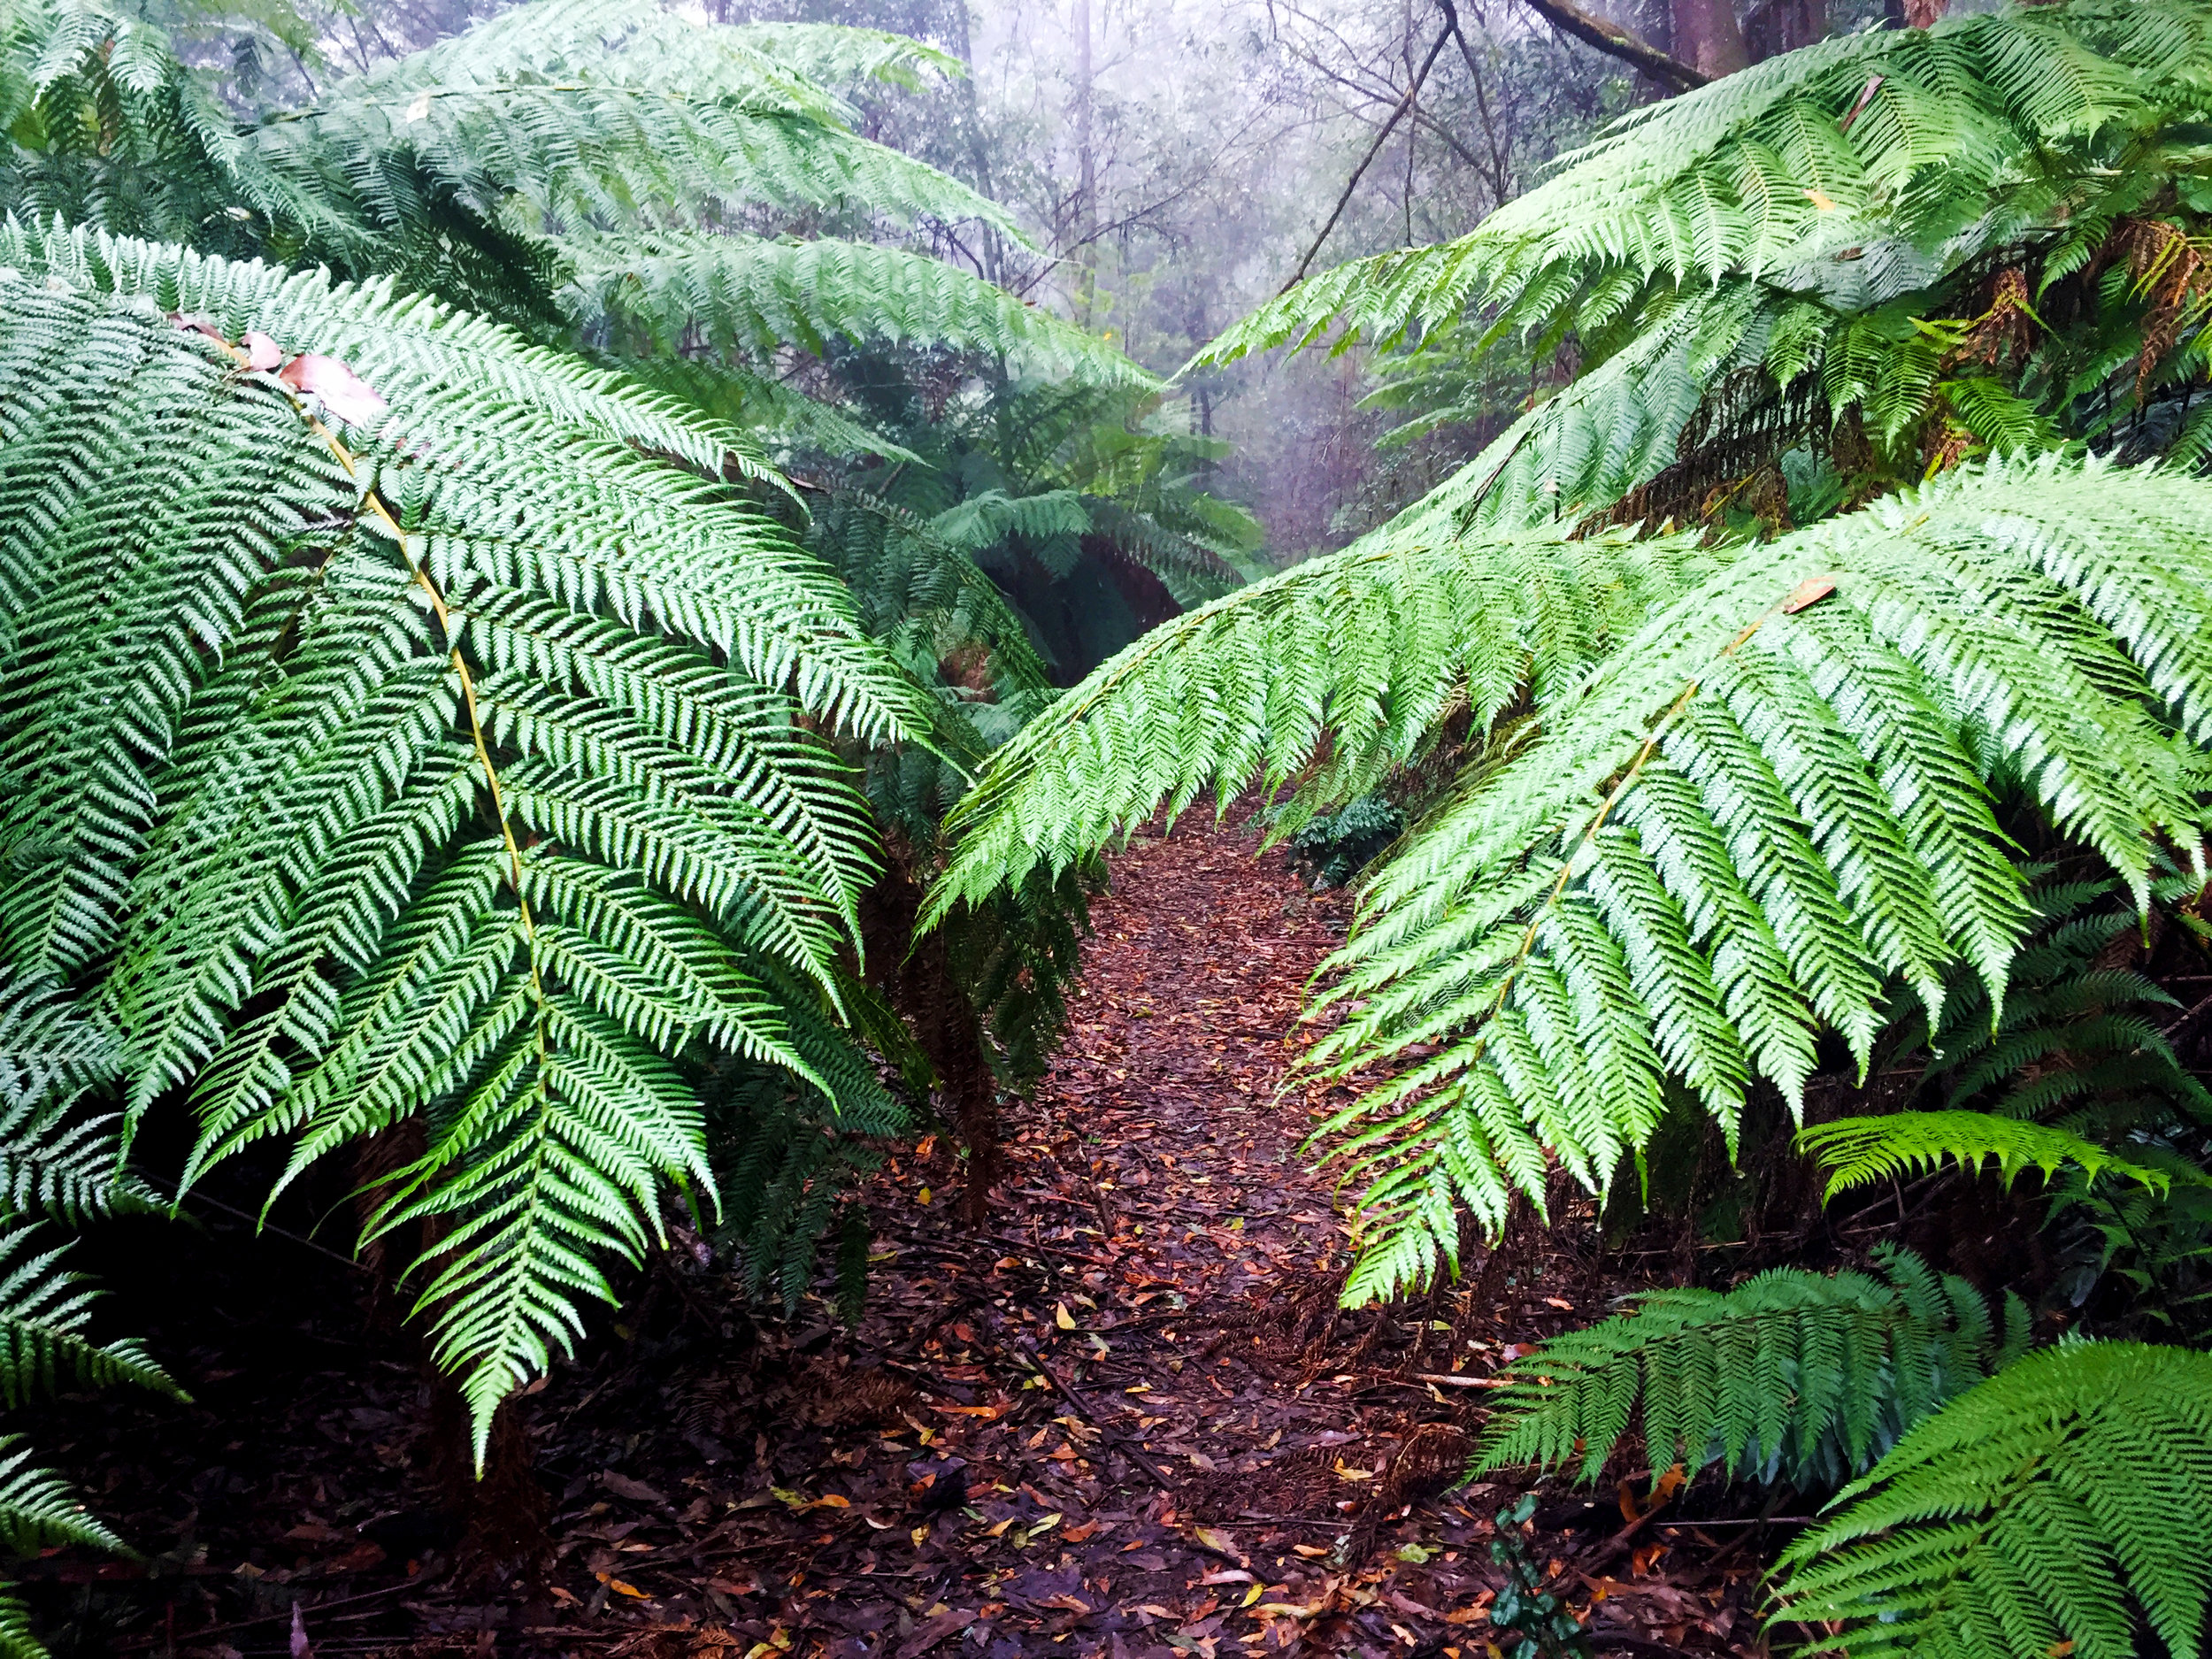 The Myrtle Gully Trail